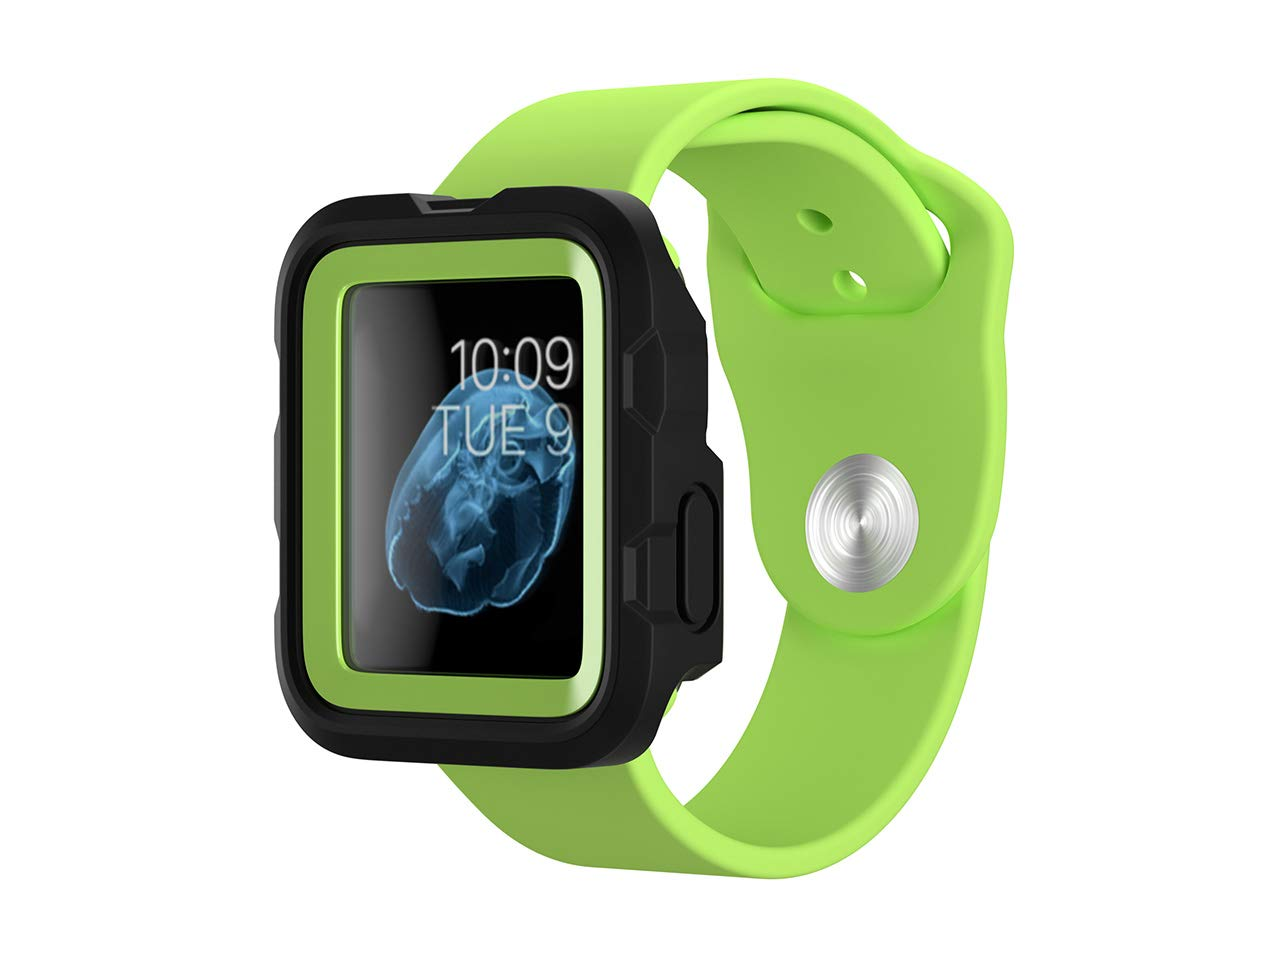 Griffin Survivor Tactical Case for Apple Watch 38mm, Green by Griffin Technology